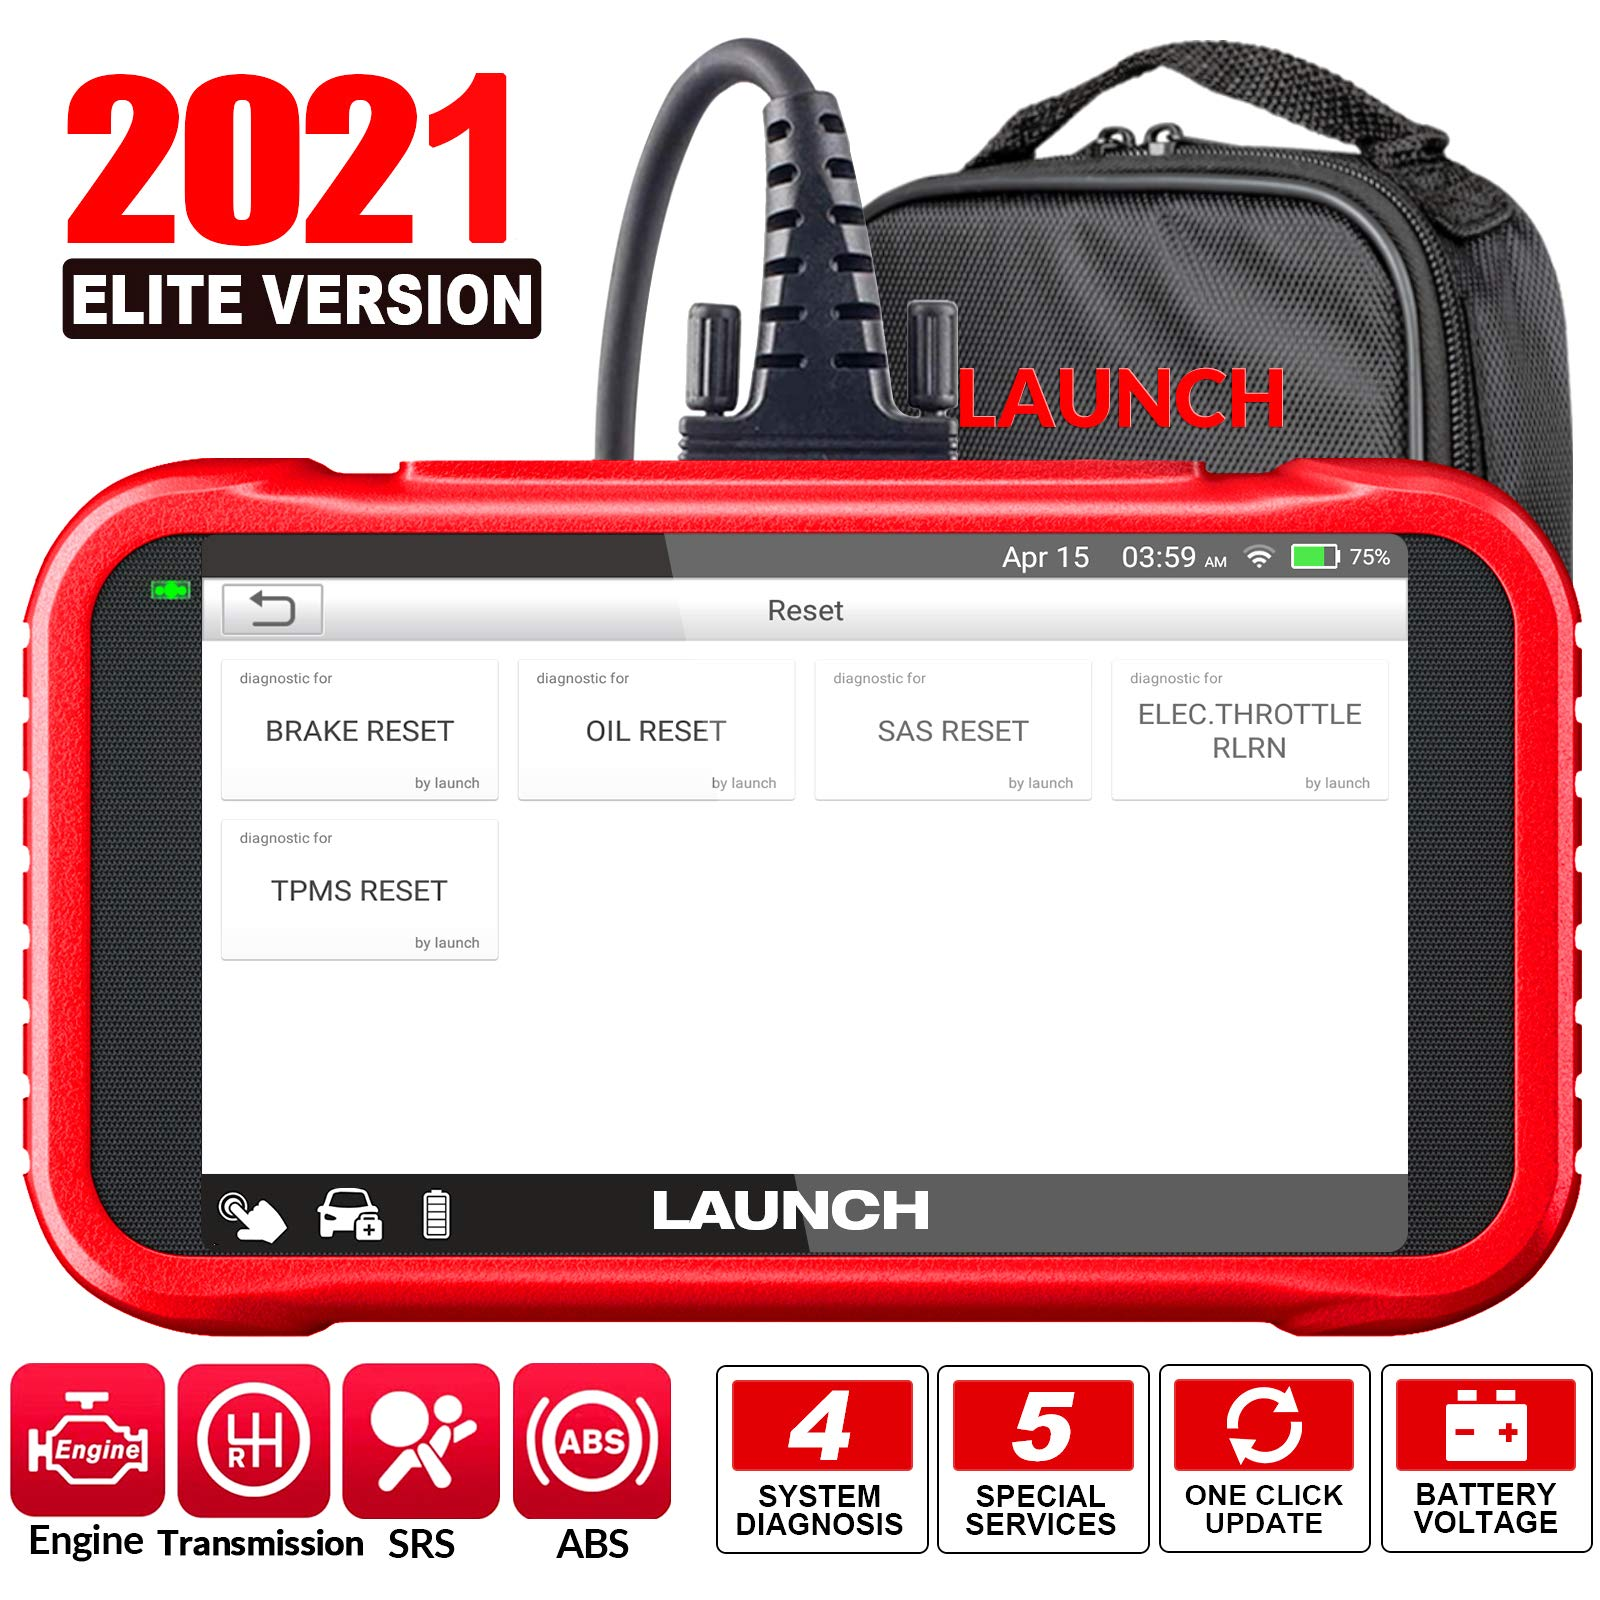 LAUNCH OBD2 Scanner-2021 New CRP129E Scan Tool for TCM Eng ABS SRS Code Reader, Oil/EPB/TPMS/SAS/Throttle Body Reset Diagnostic Tool with Carry Bag, AutoVIN WiFi Update,Upgraded of CRP123/CRP129